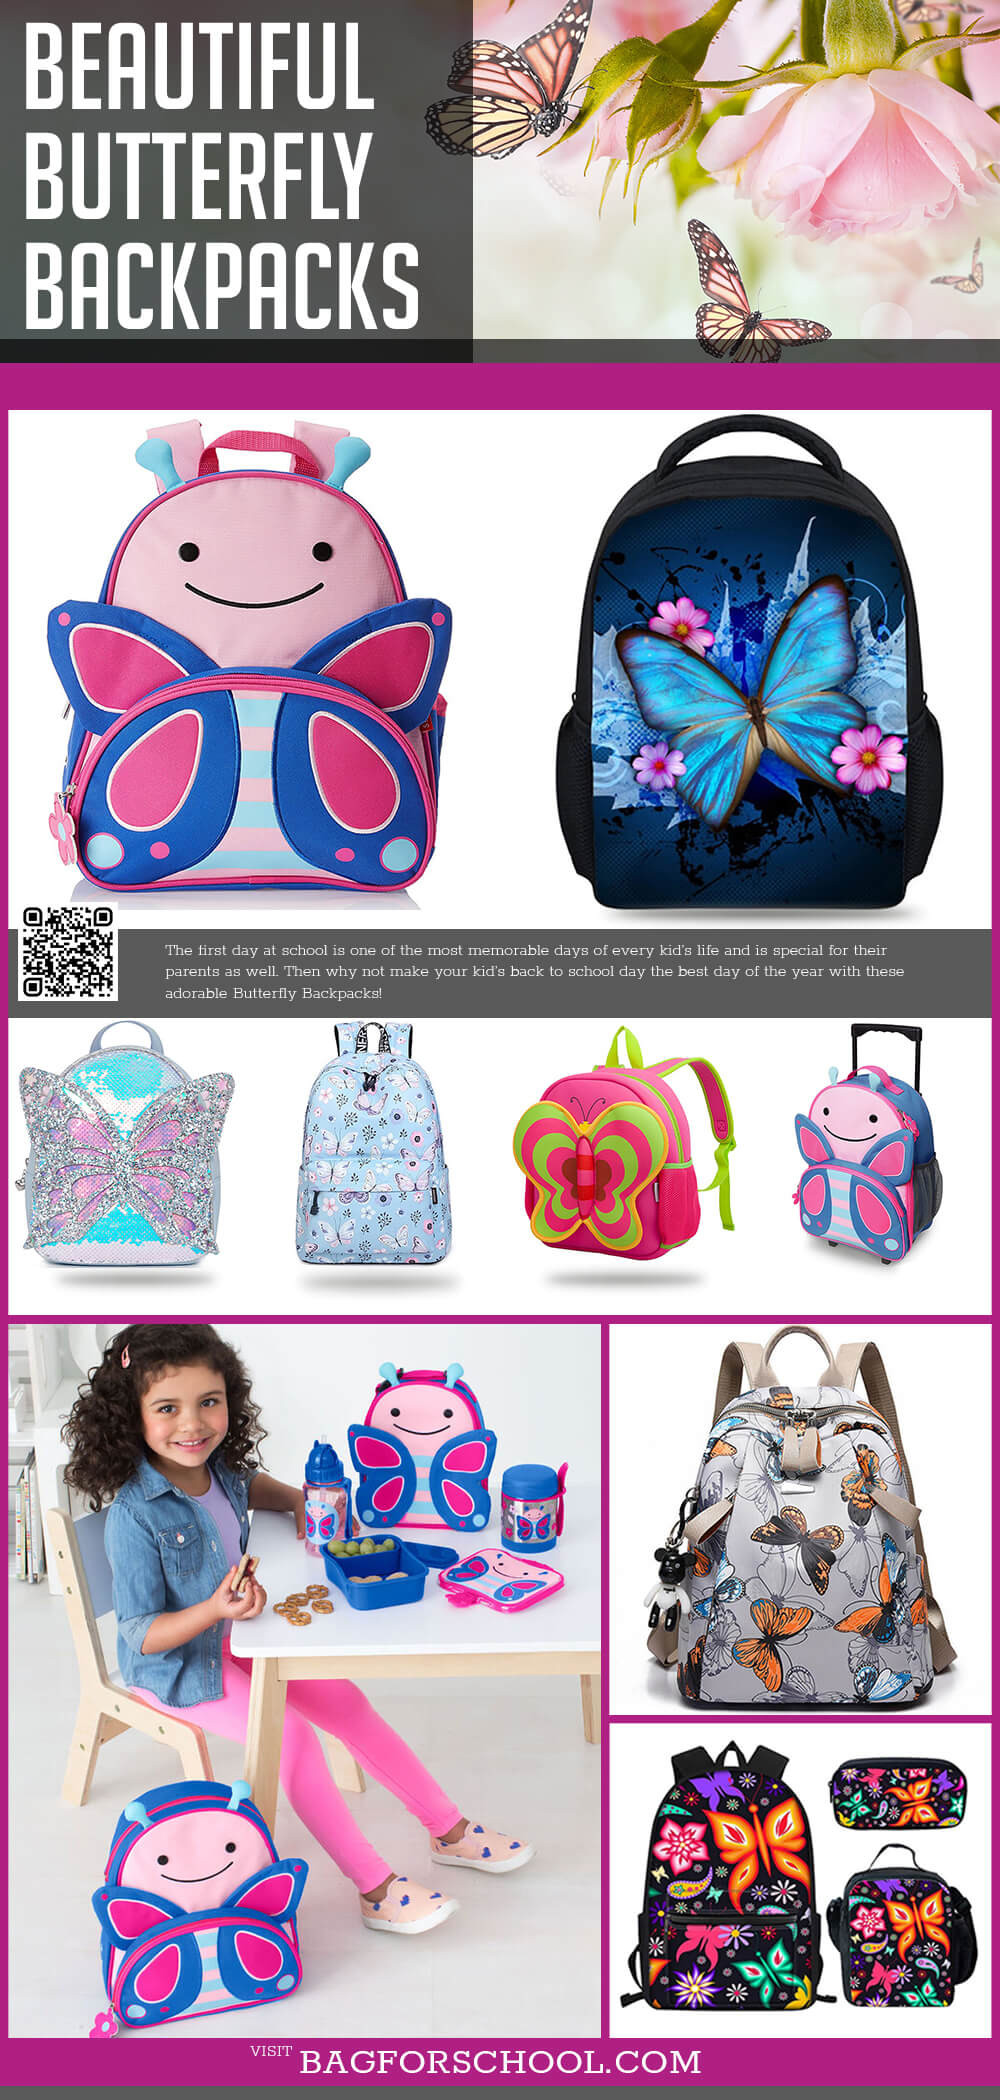 Butterfly Backpacks